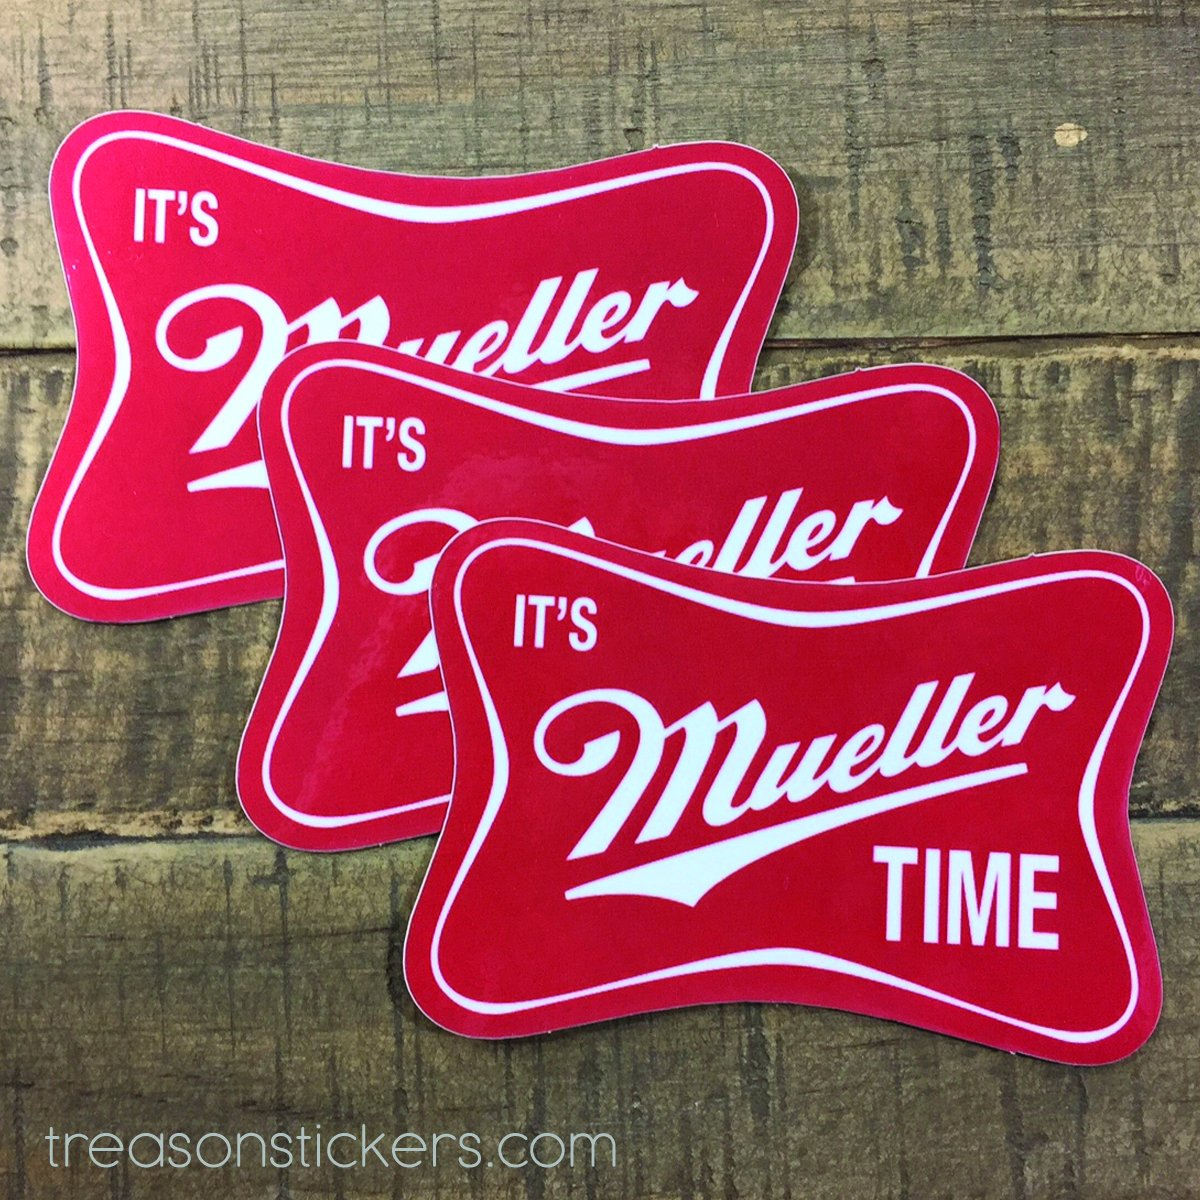 It's Mueller Time Sticker 3 Pack